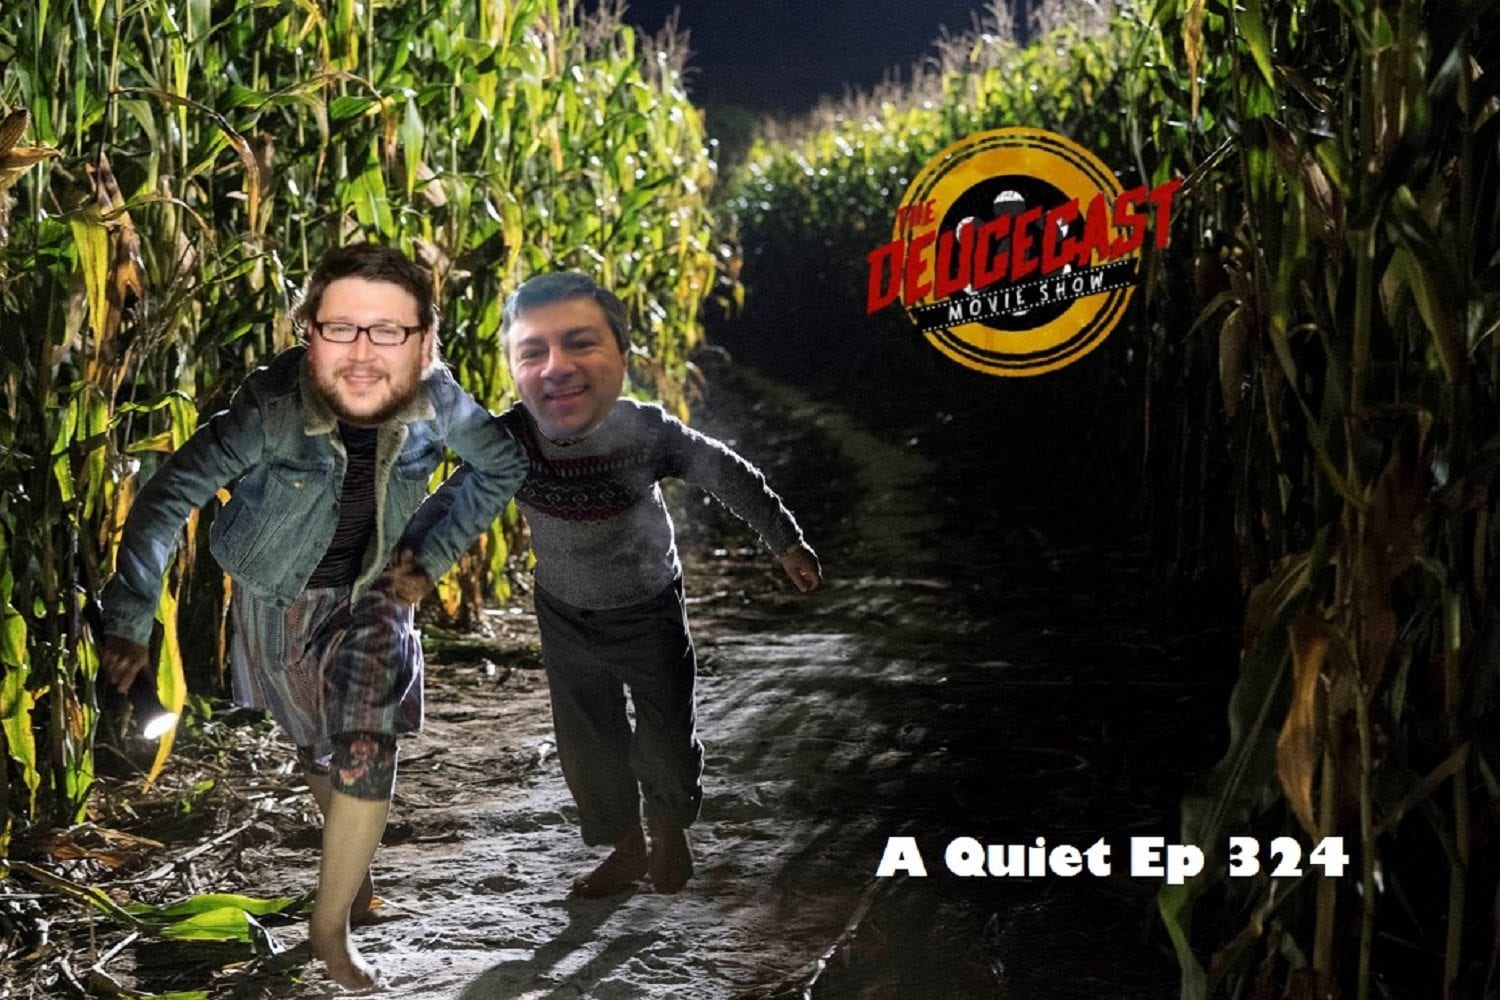 The Deucecast Movie Show #324 A ReFlicktion Place